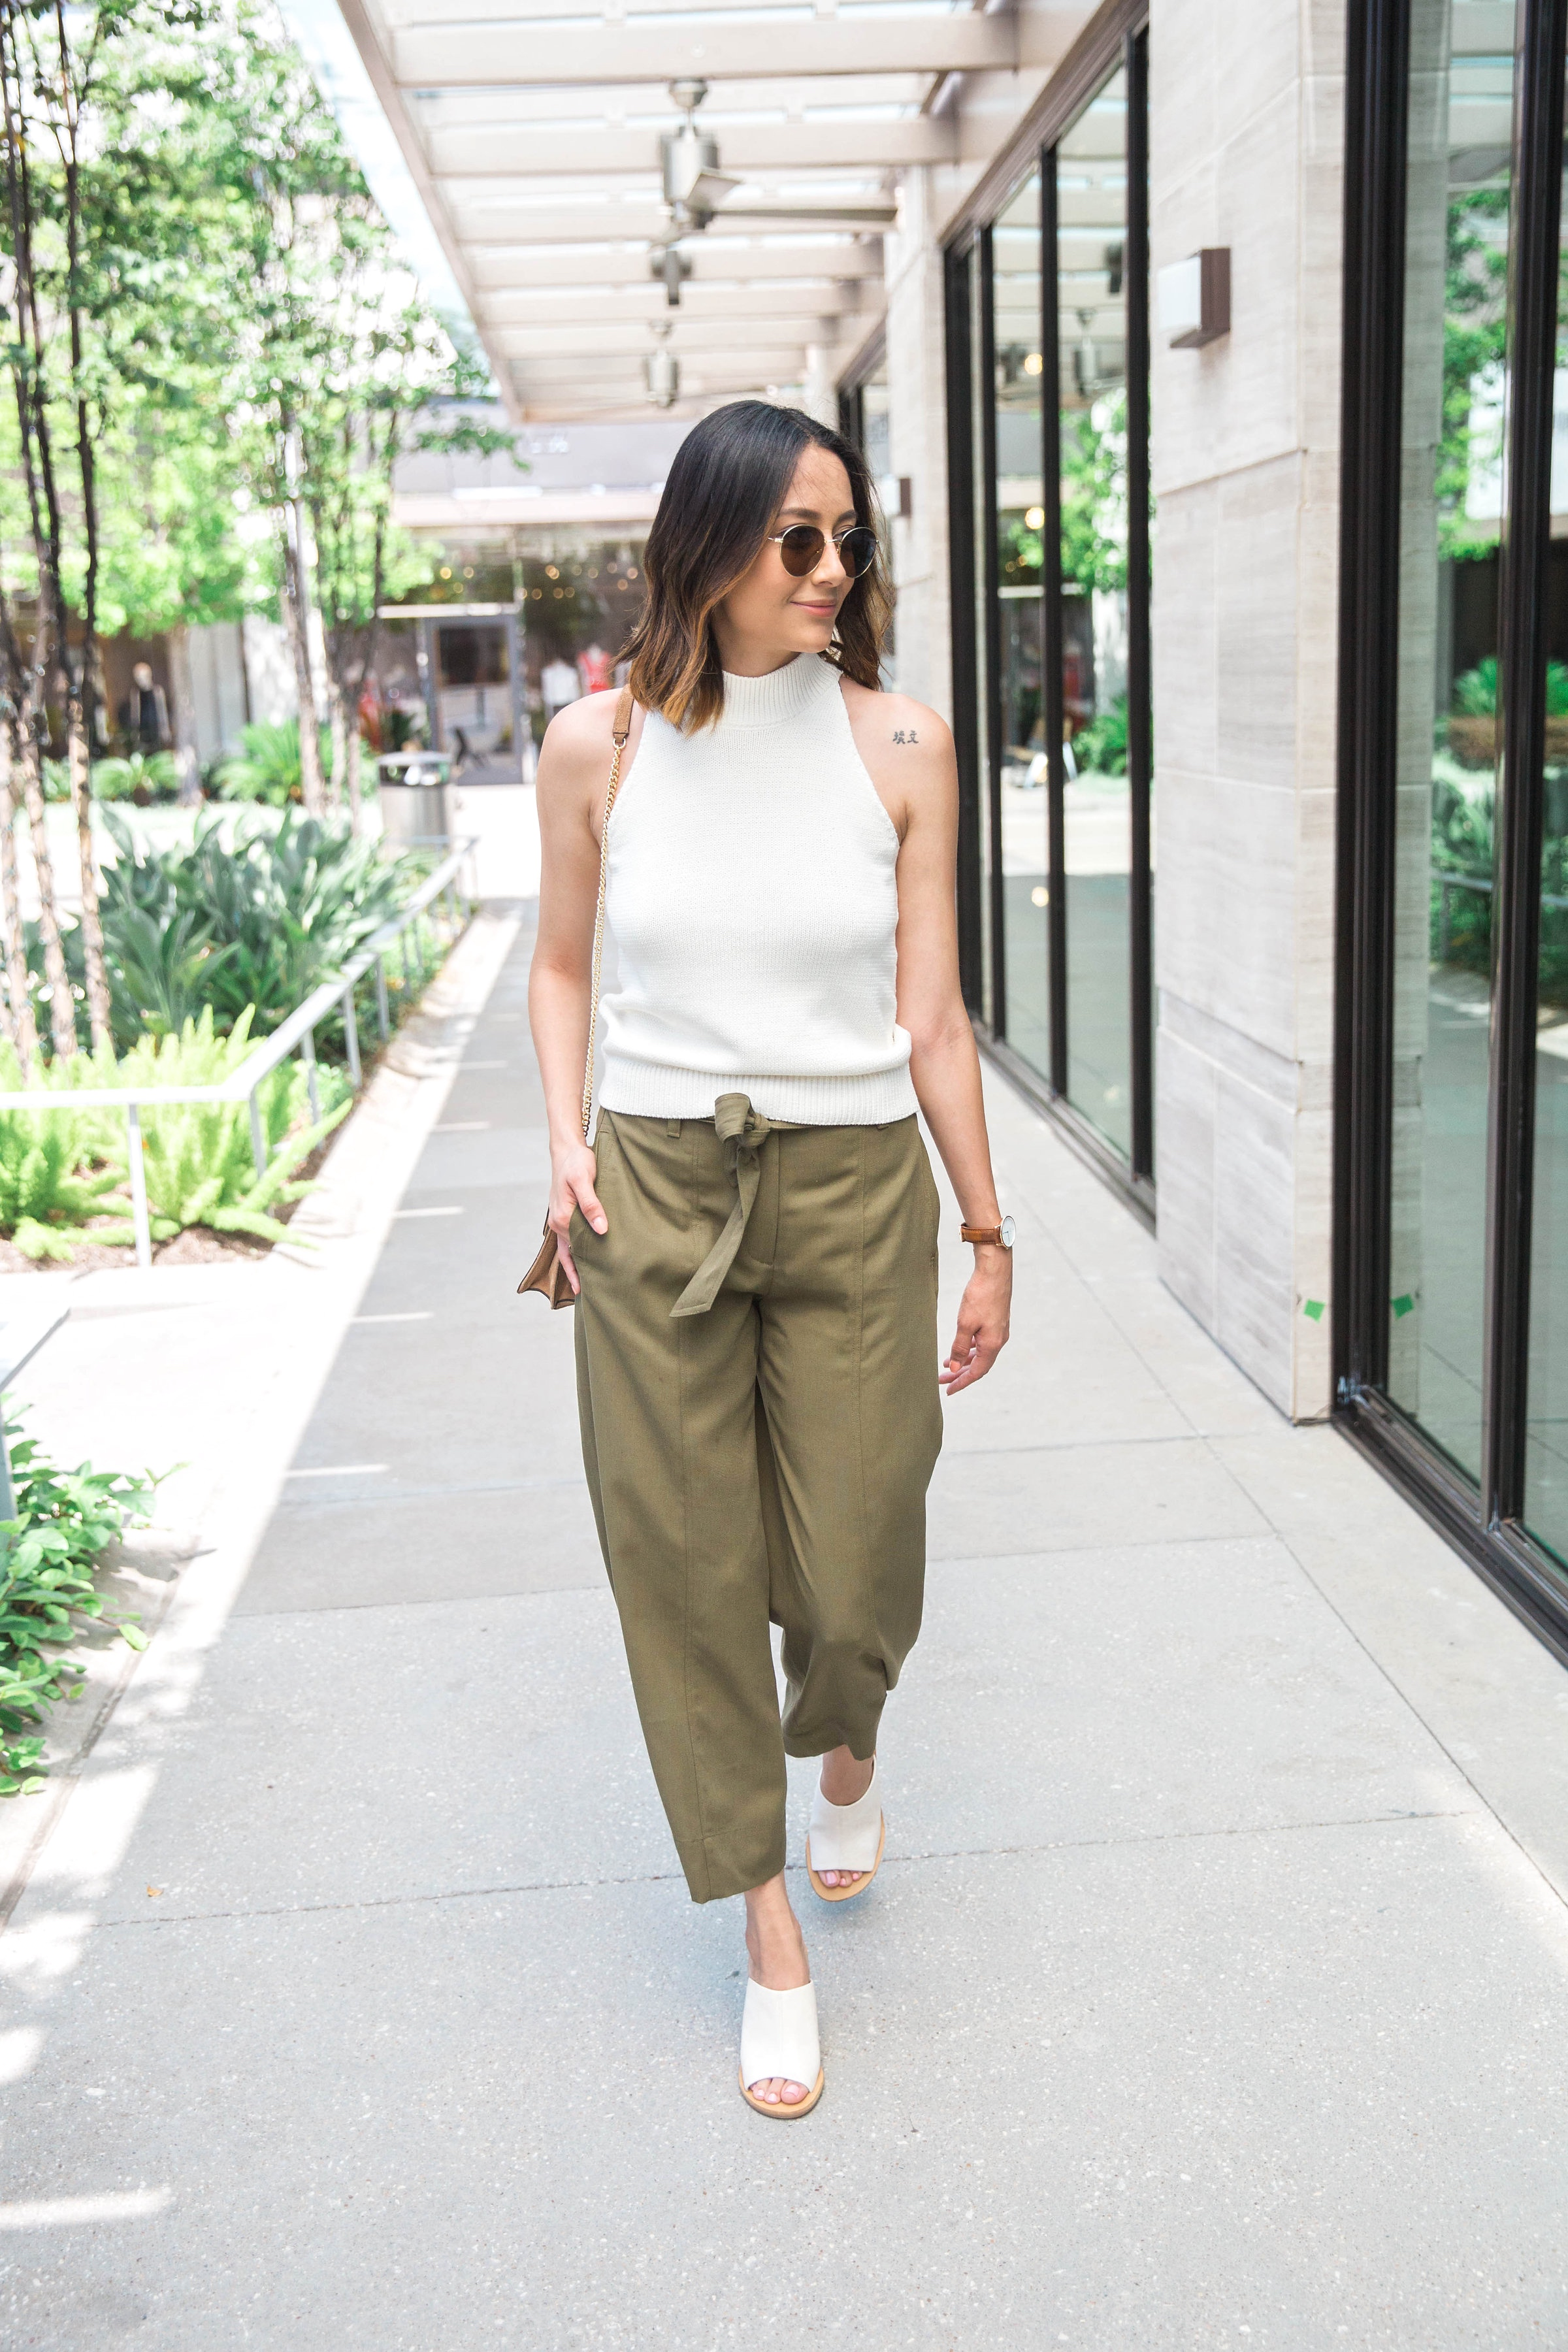 Easy Transitional Separates | Culottes | Sweater Top | Slip-On Wedge Sandals